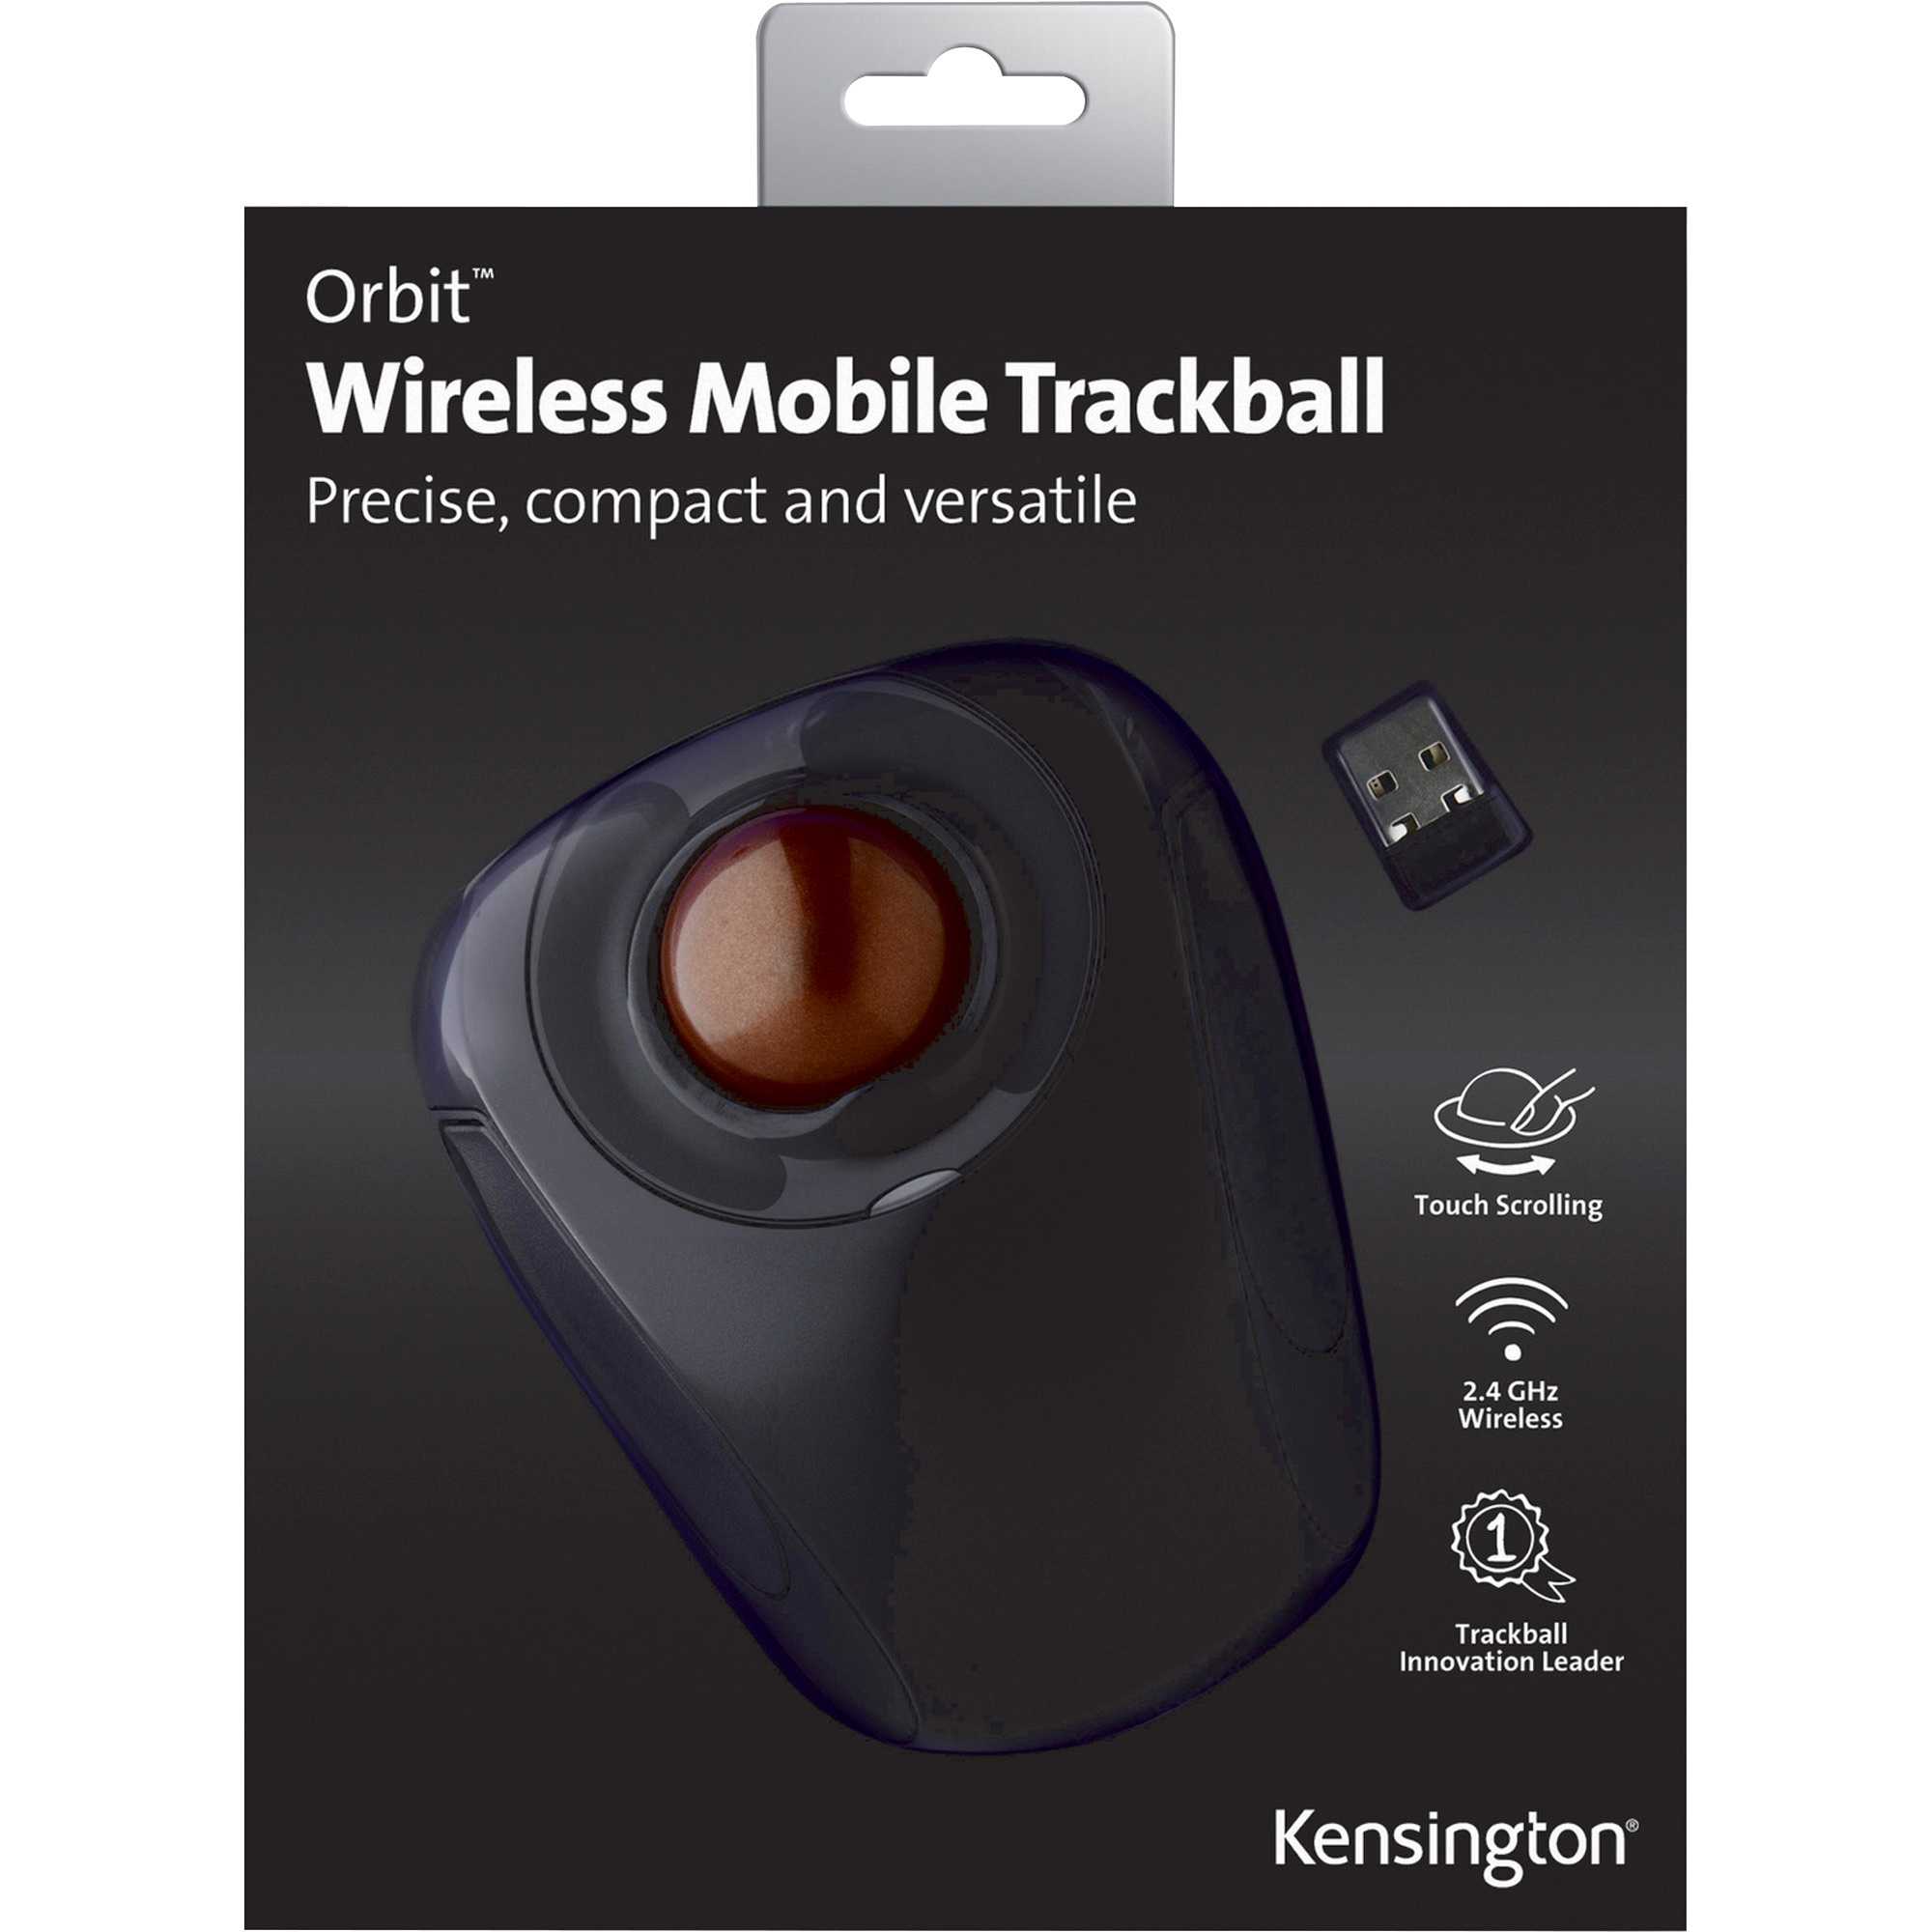 KENSINGTON ORBIT WIRELESS MOBILE TRACKBALL DRIVER DOWNLOAD